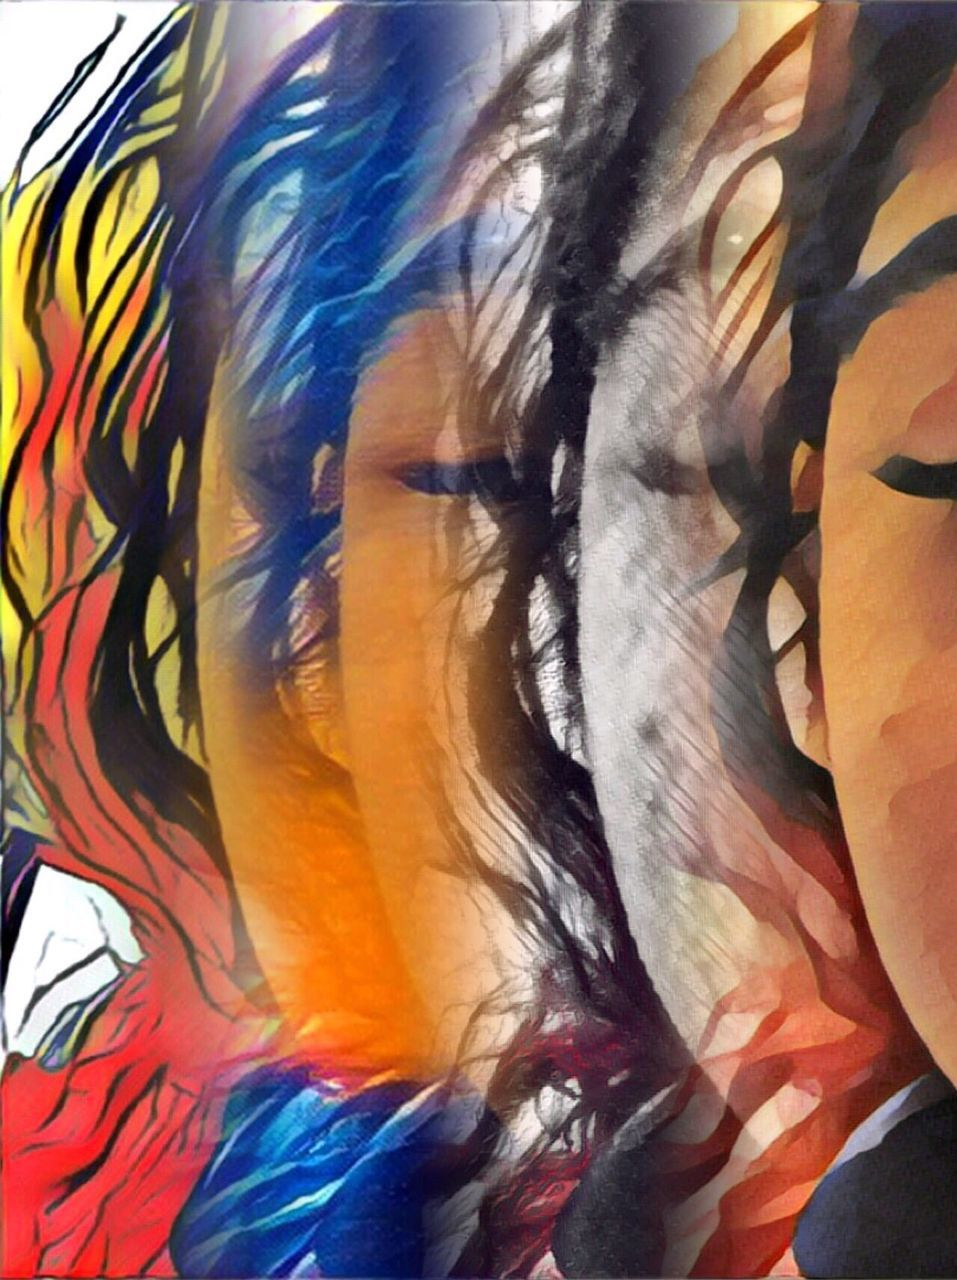 multi colored, art and craft, backgrounds, abstract, painted image, full frame, creativity, textured, arts culture and entertainment, paint, artist, fine art painting, sketch, human body part, people, close-up, adult, young adult, one person, day